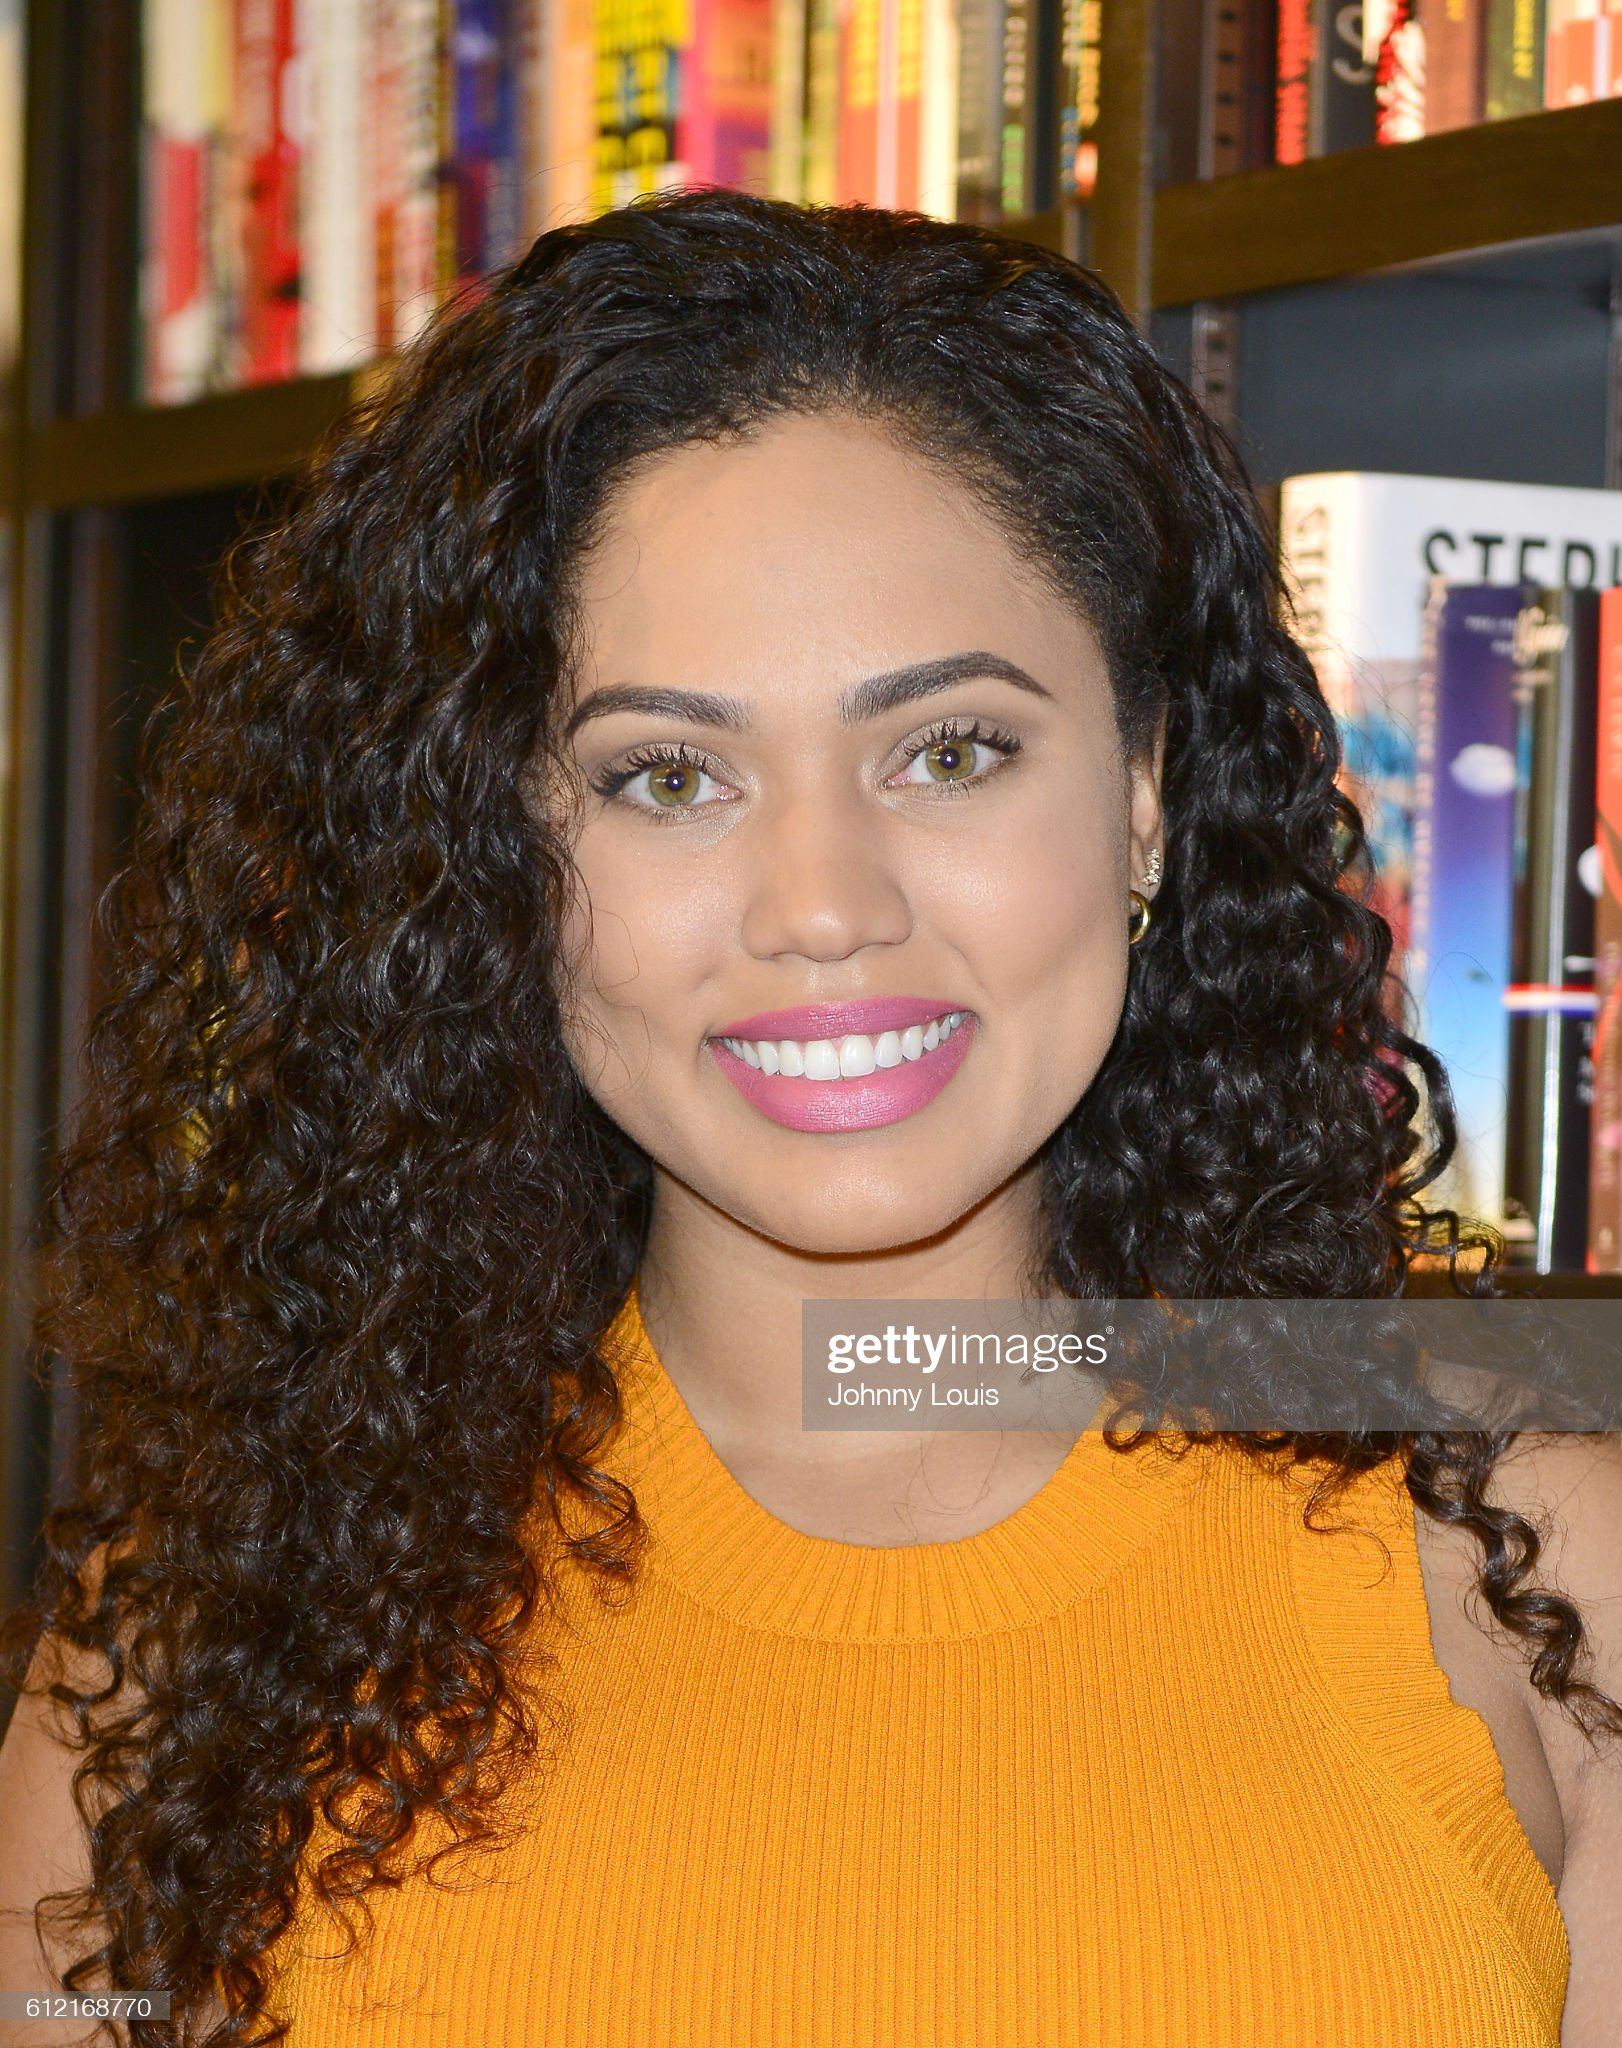 Hazel eyes - Personas famosas con los ojos de color AVELLANA Ayesha-curry-signs-her-first-cookbook-the-seasoned-life-food-family-picture-id612168770?s=2048x2048